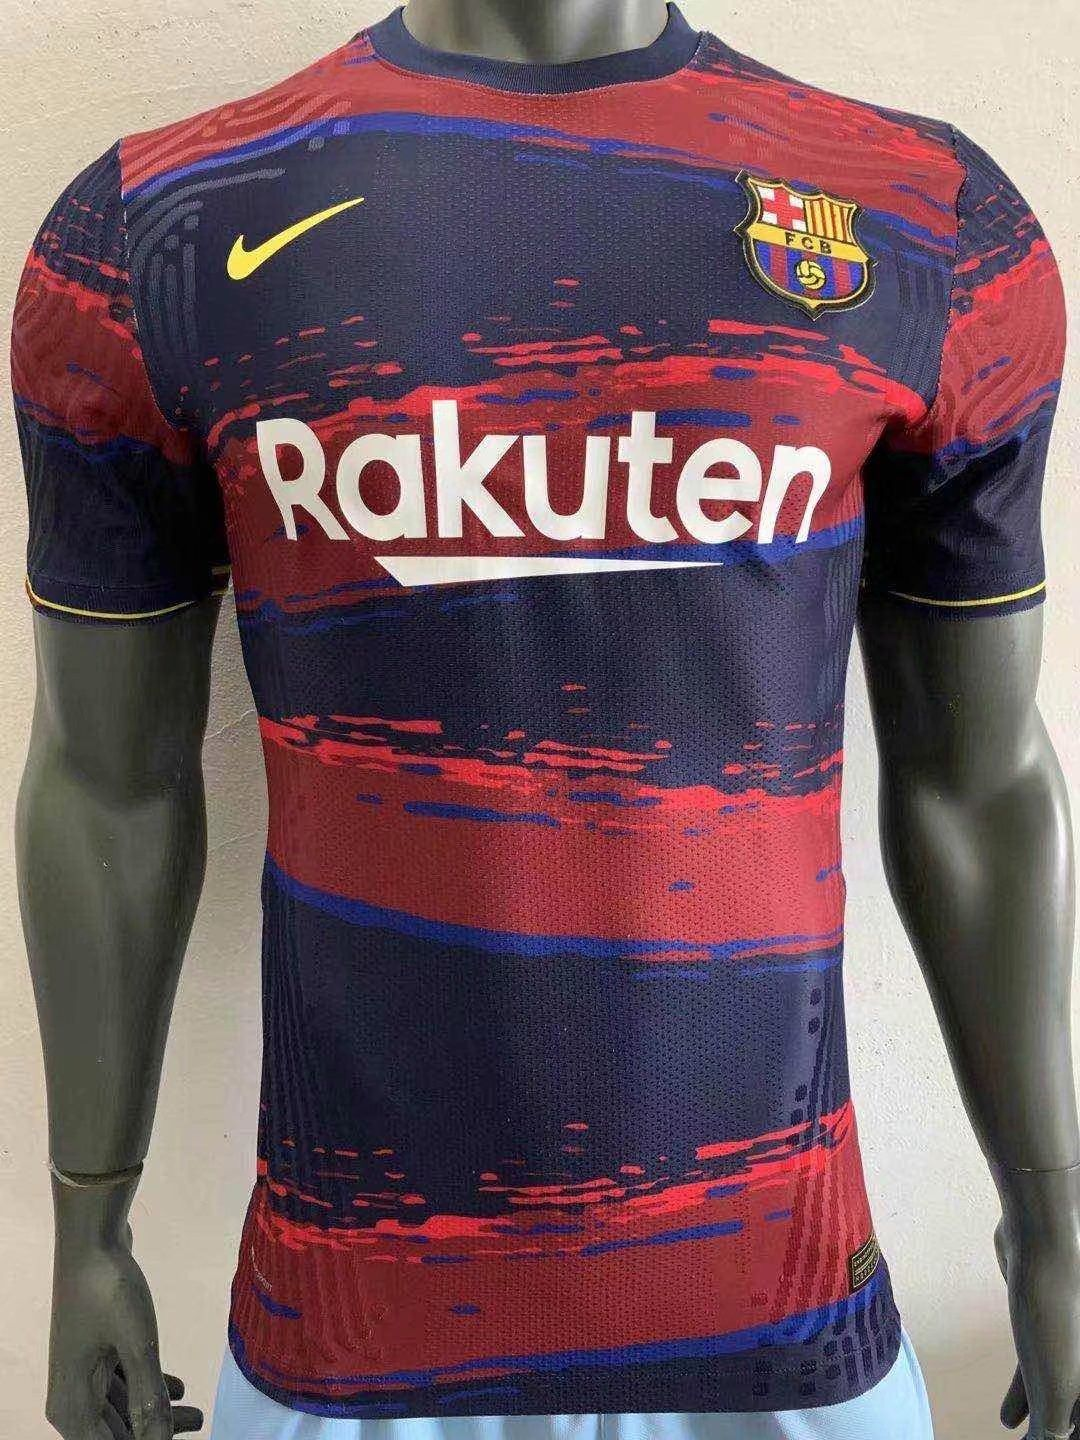 Barcelona Team Uniforms Training Shirt 2021 Player Version In 2020 Soccer Jersey Soccer Shirts Soccer Kits